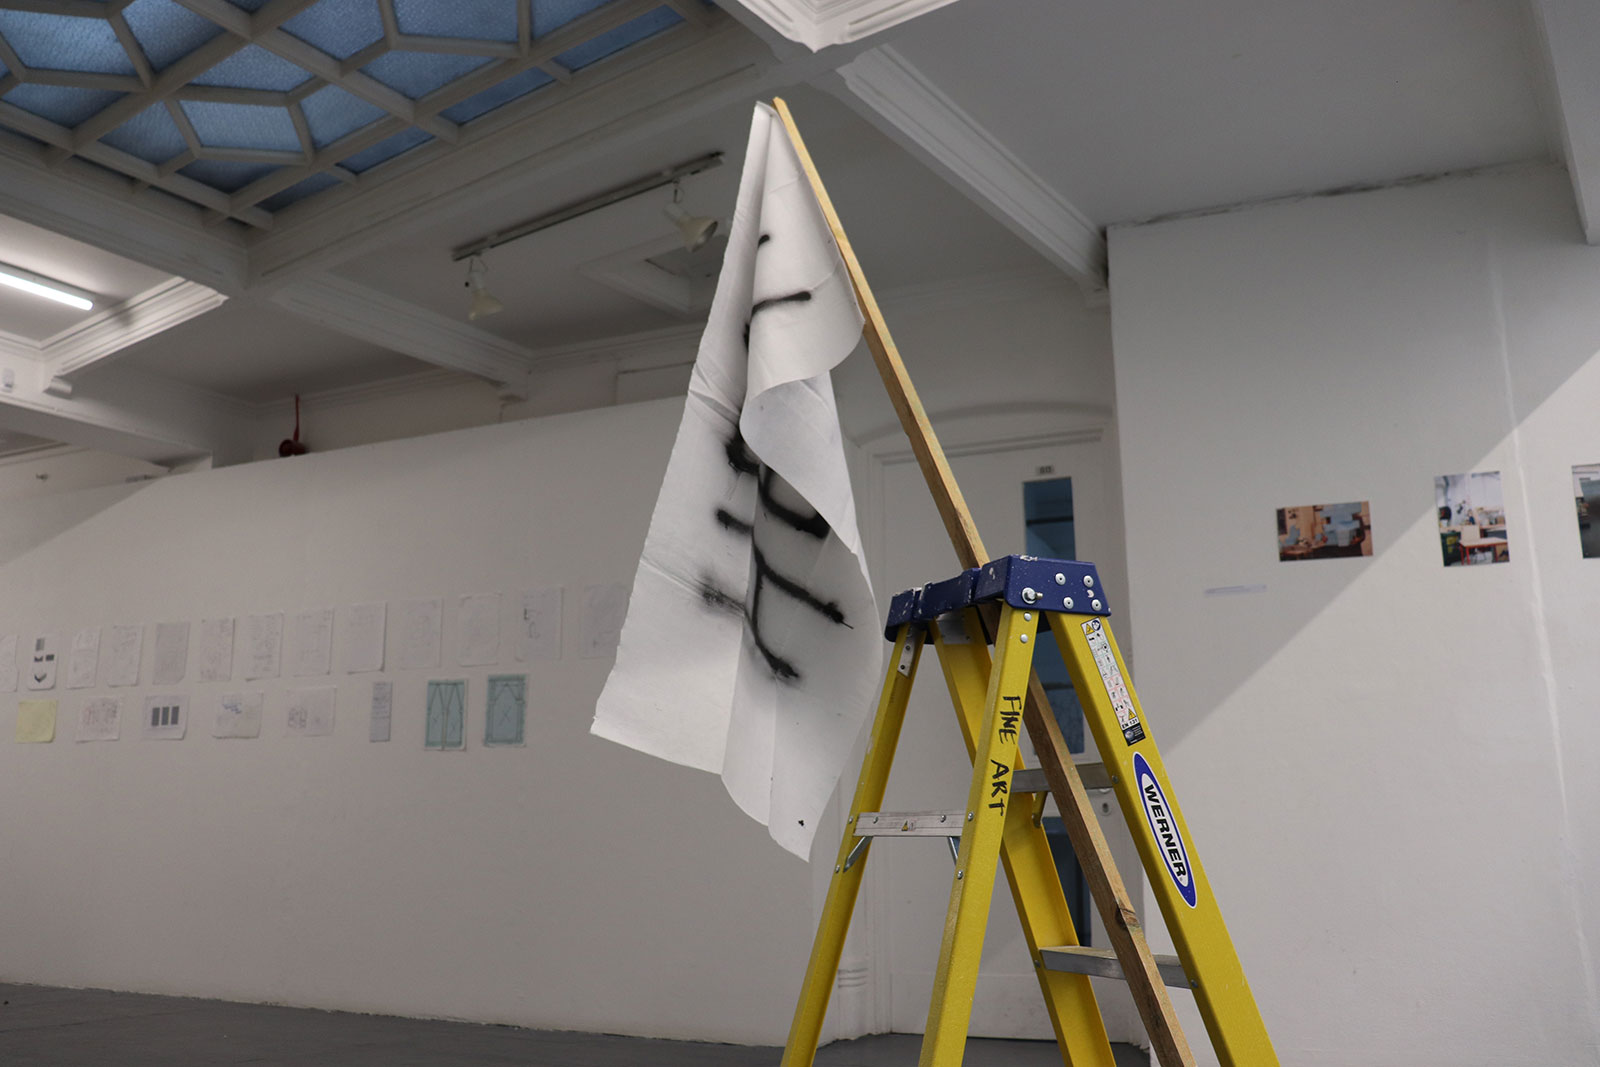 Maddie Exton, BA Fine Art student creates art work at Norwich University of the Arts, a ladder holding up a white flag